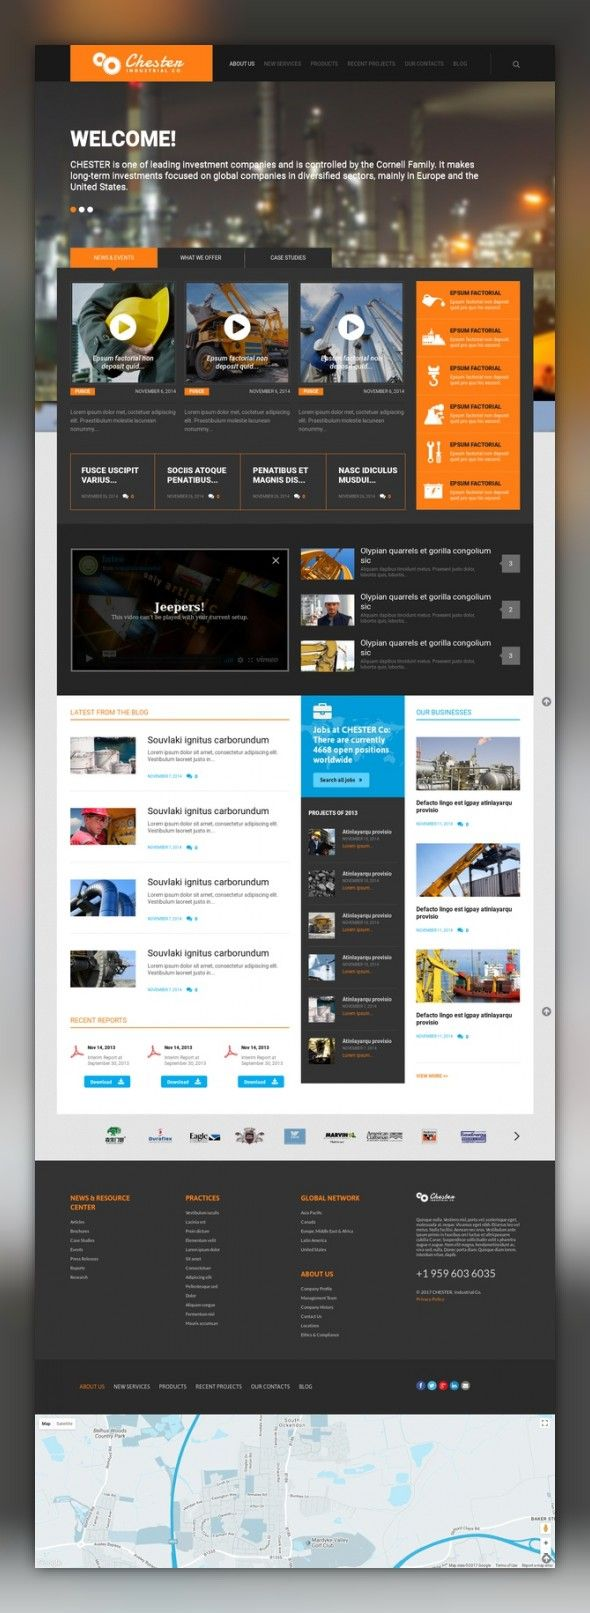 Industrial Company WordPress Theme CMS & Blog Templates, WordPress Themes, Business & Services, Industrial Templates